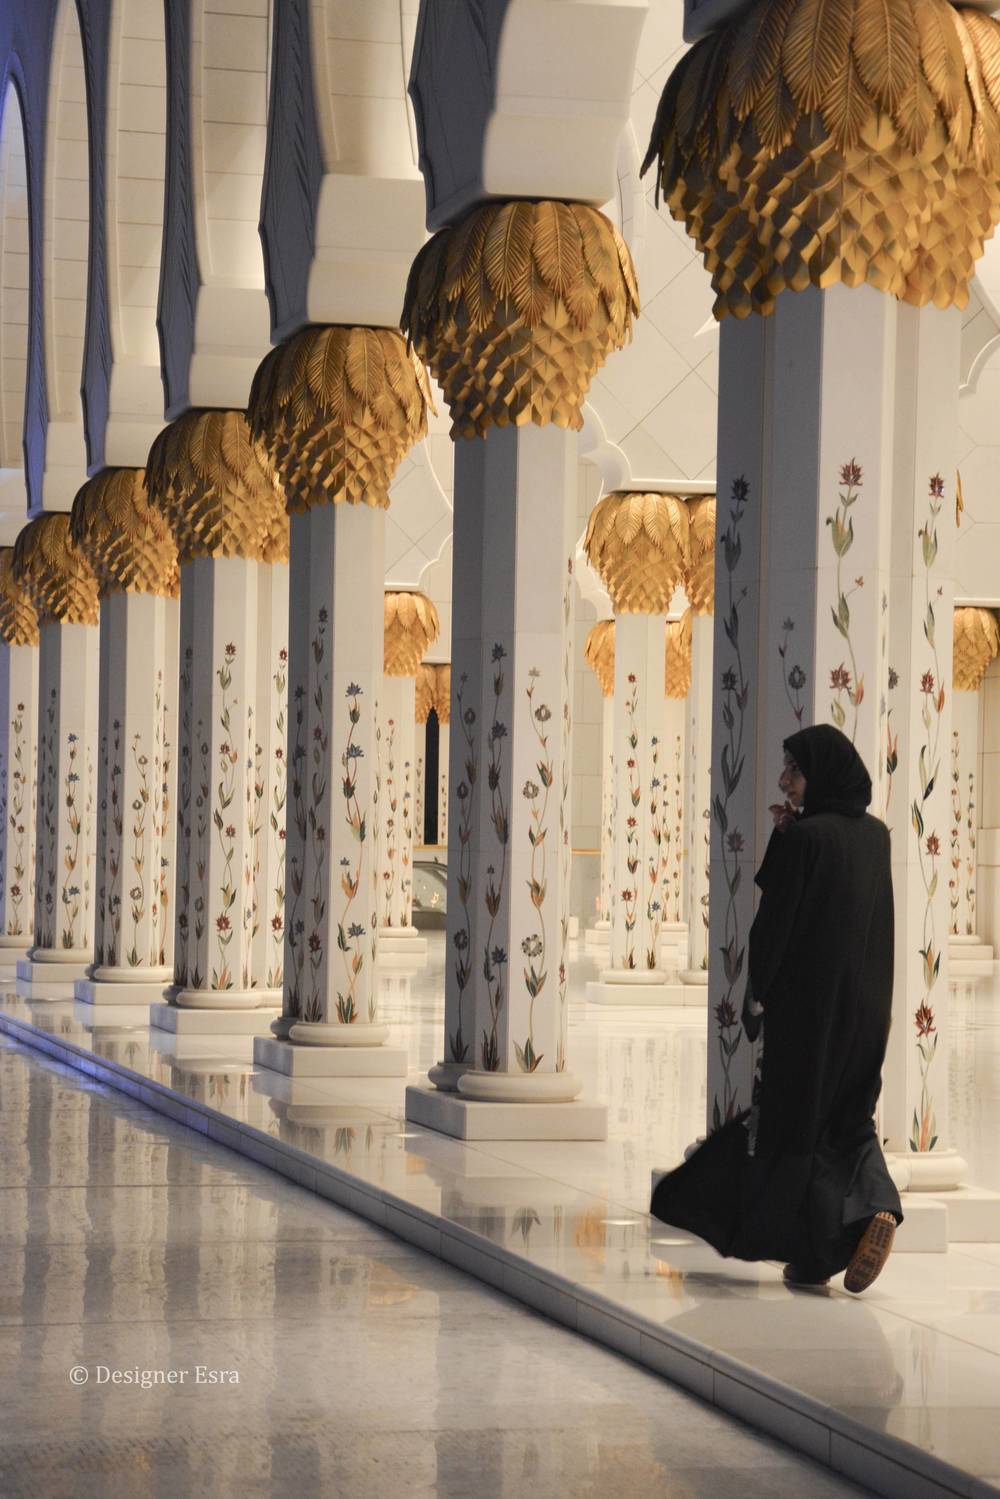 Floral Columns in Sheikh Zayed Grand Mosque